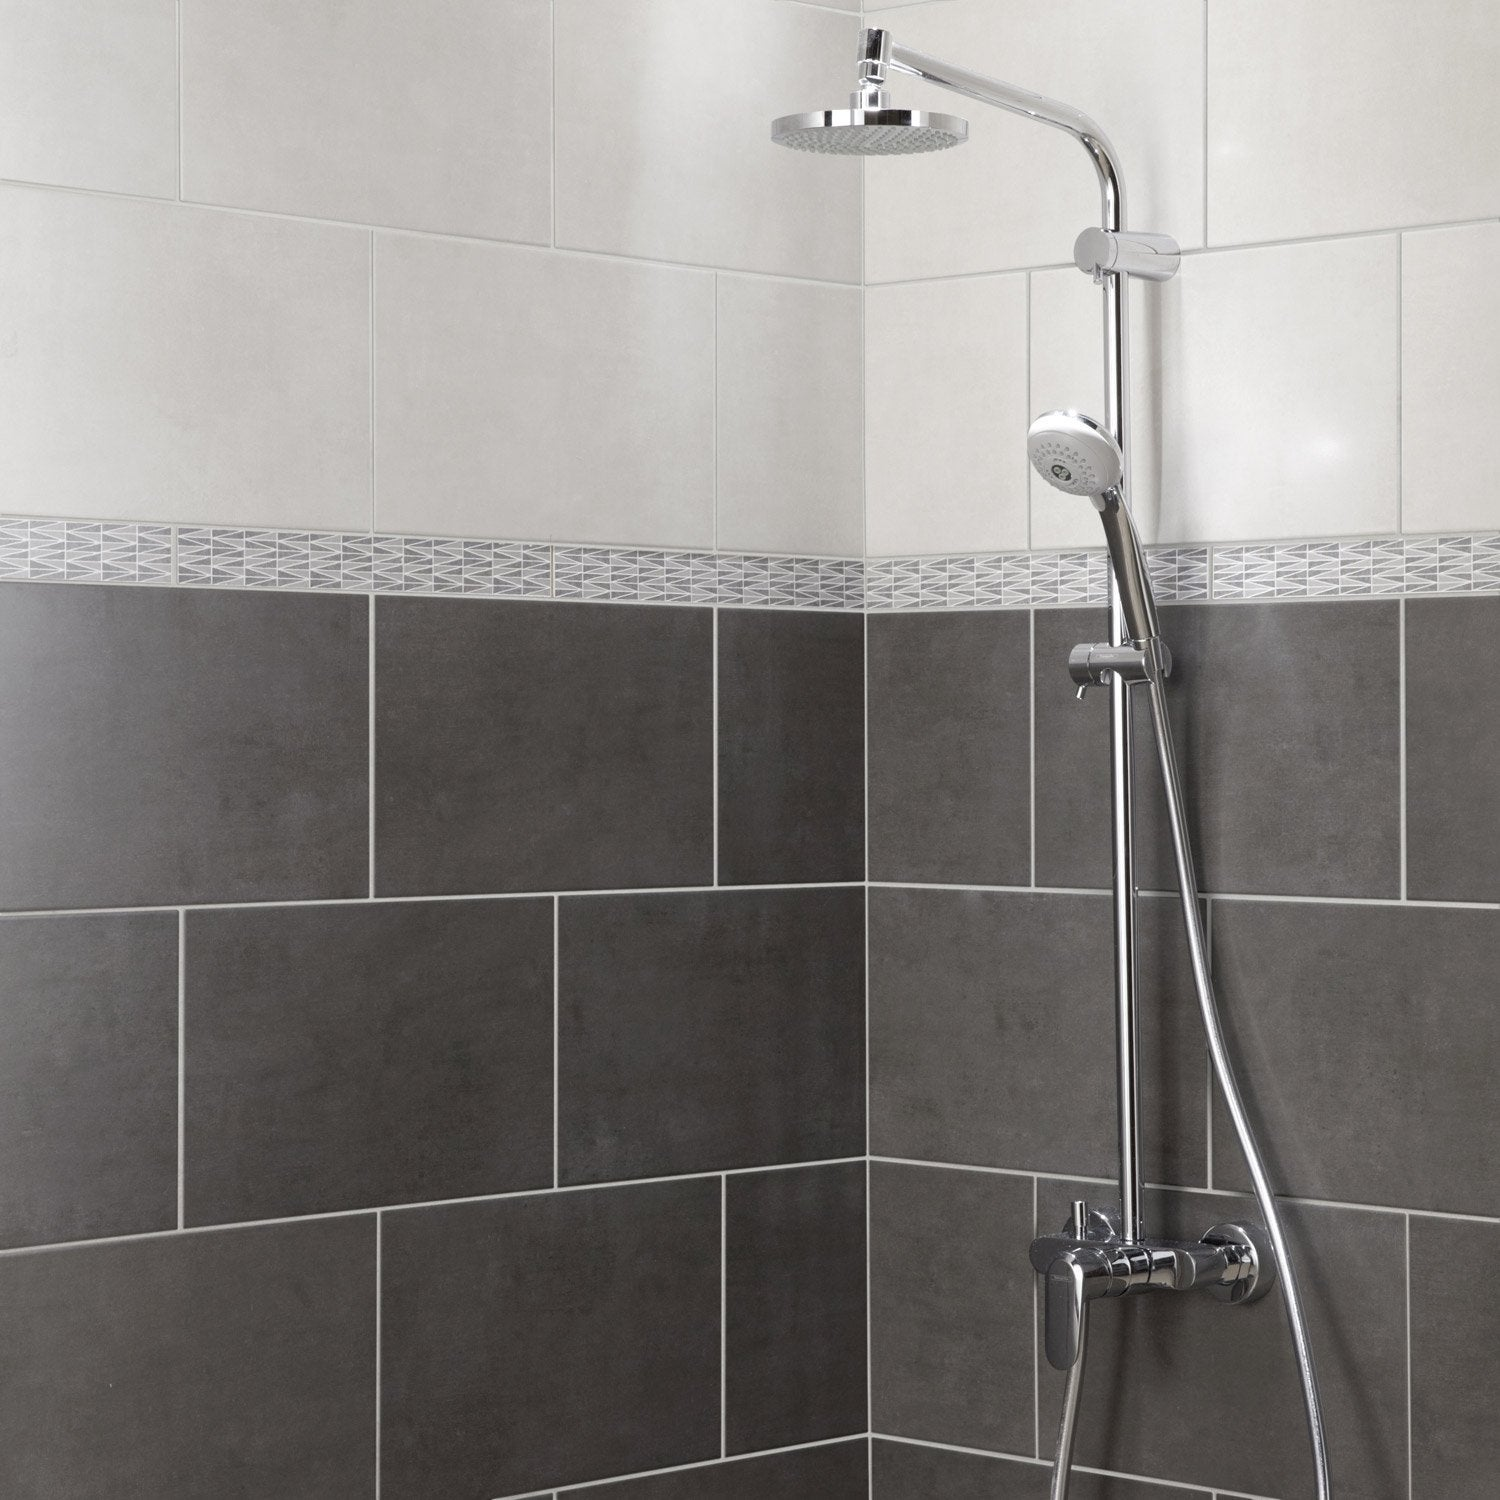 Fa ence mur anthracite smart x cm leroy merlin for Faillance salle de bain